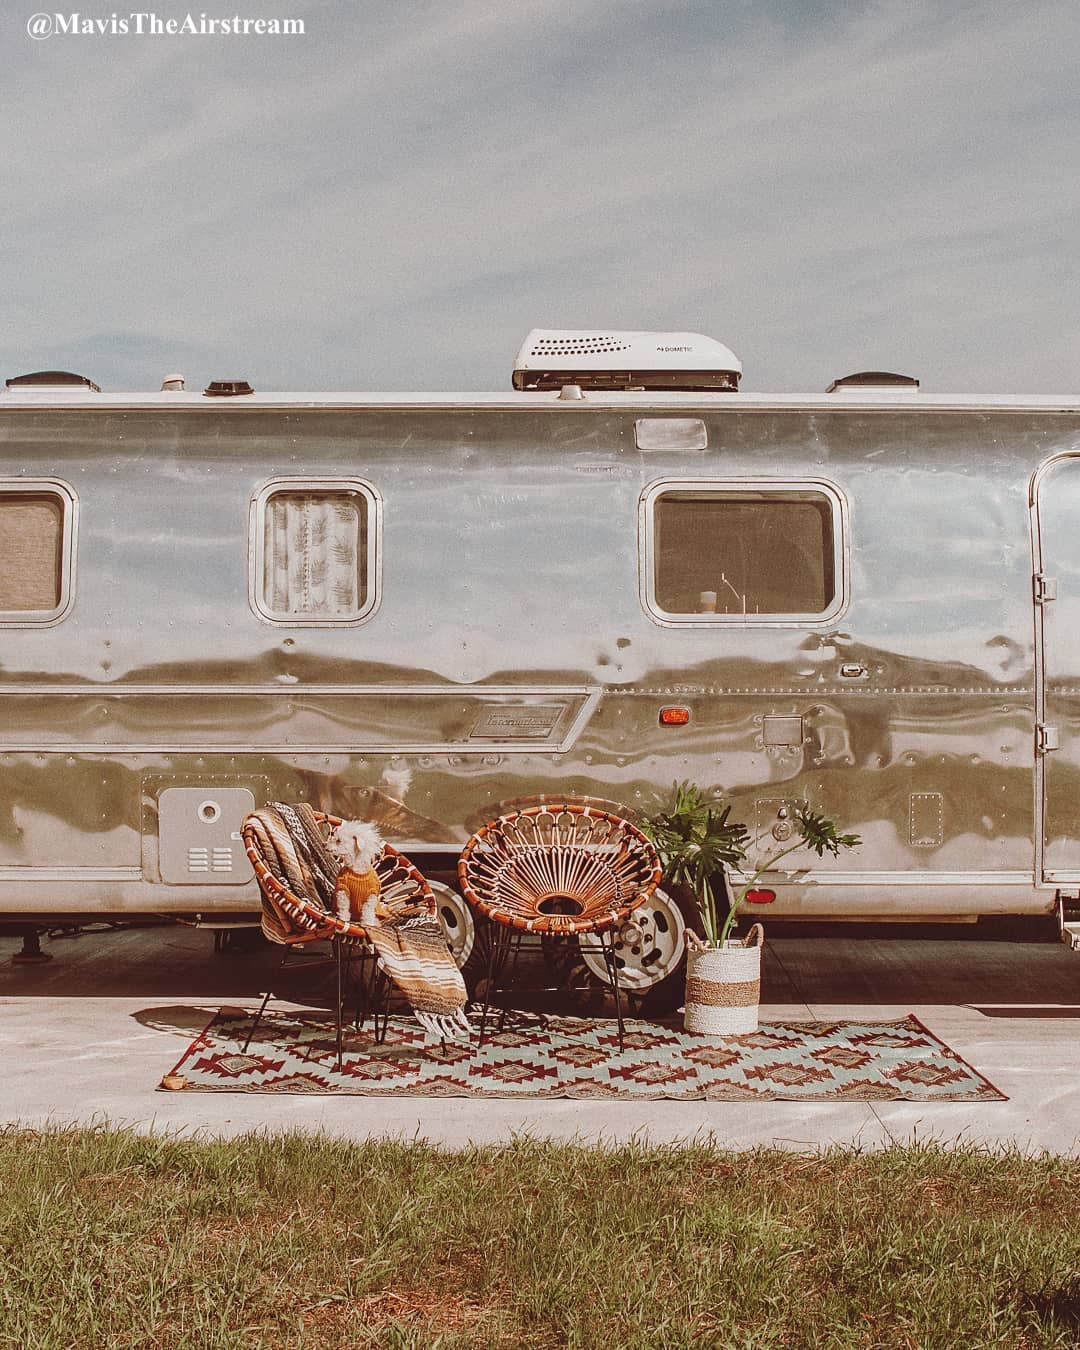 Vintage RV patio decorating ideas